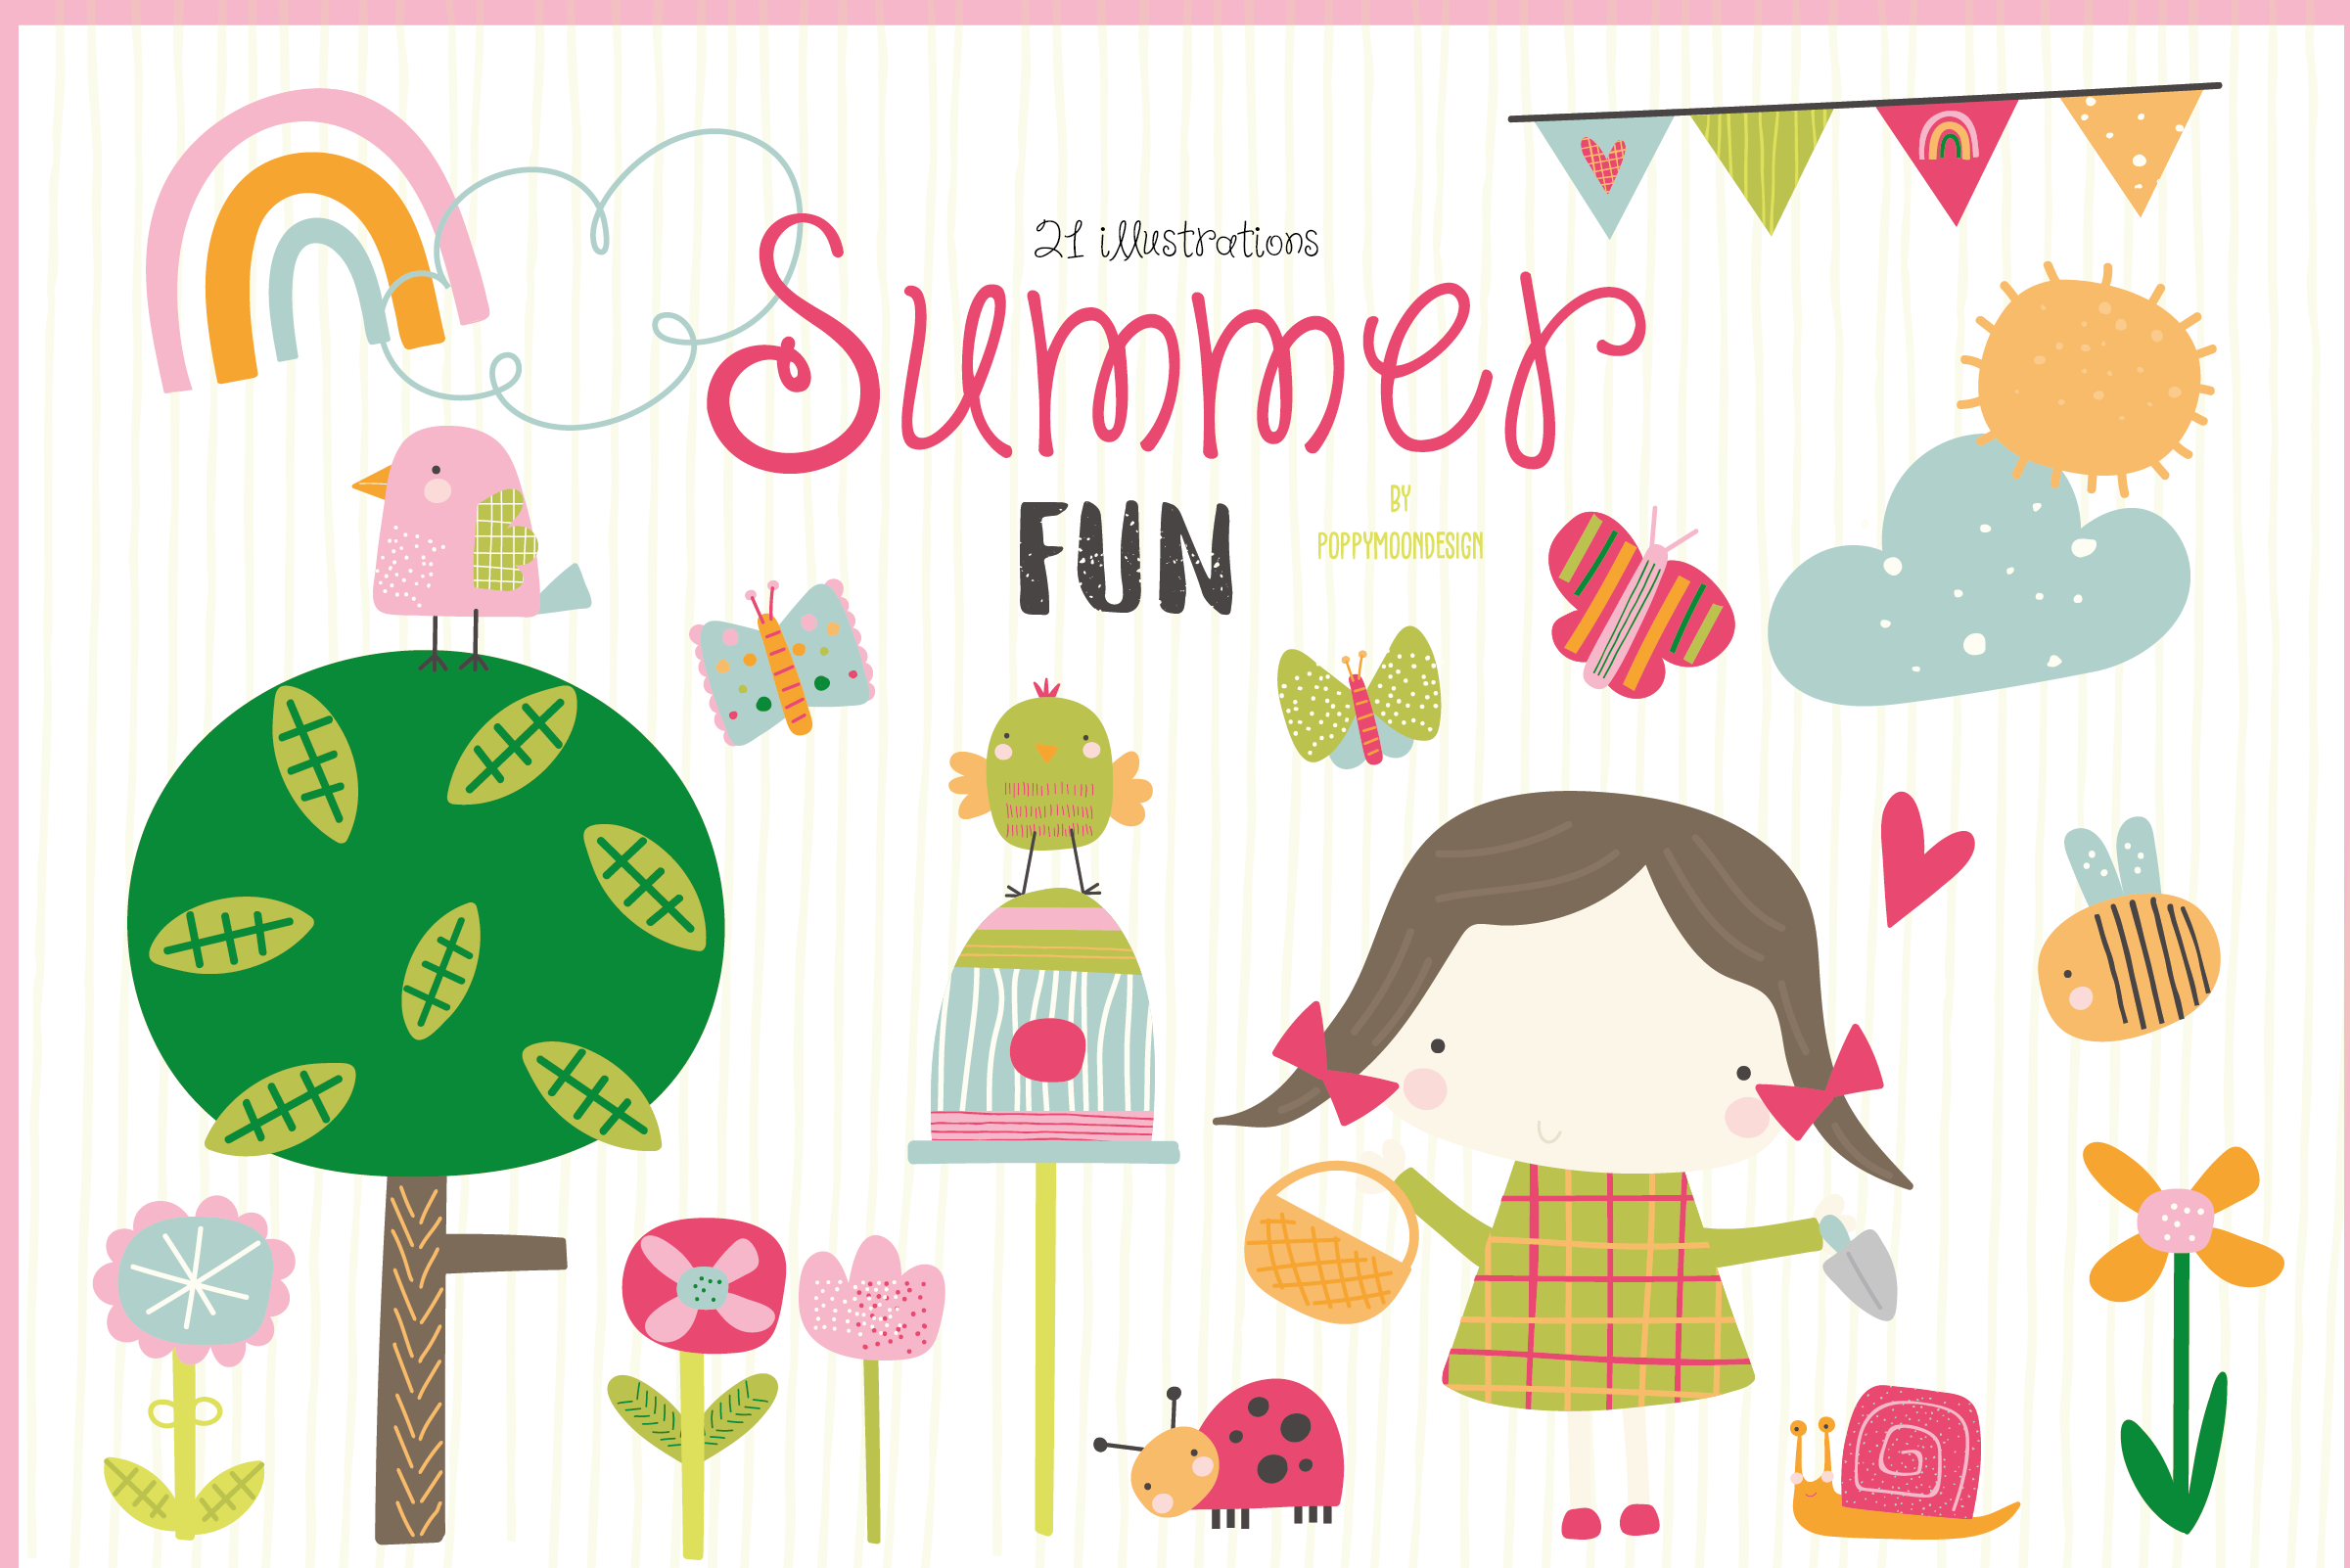 Download Free Summer Fun Clipart Graphic By Poppymoondesign Creative Fabrica for Cricut Explore, Silhouette and other cutting machines.